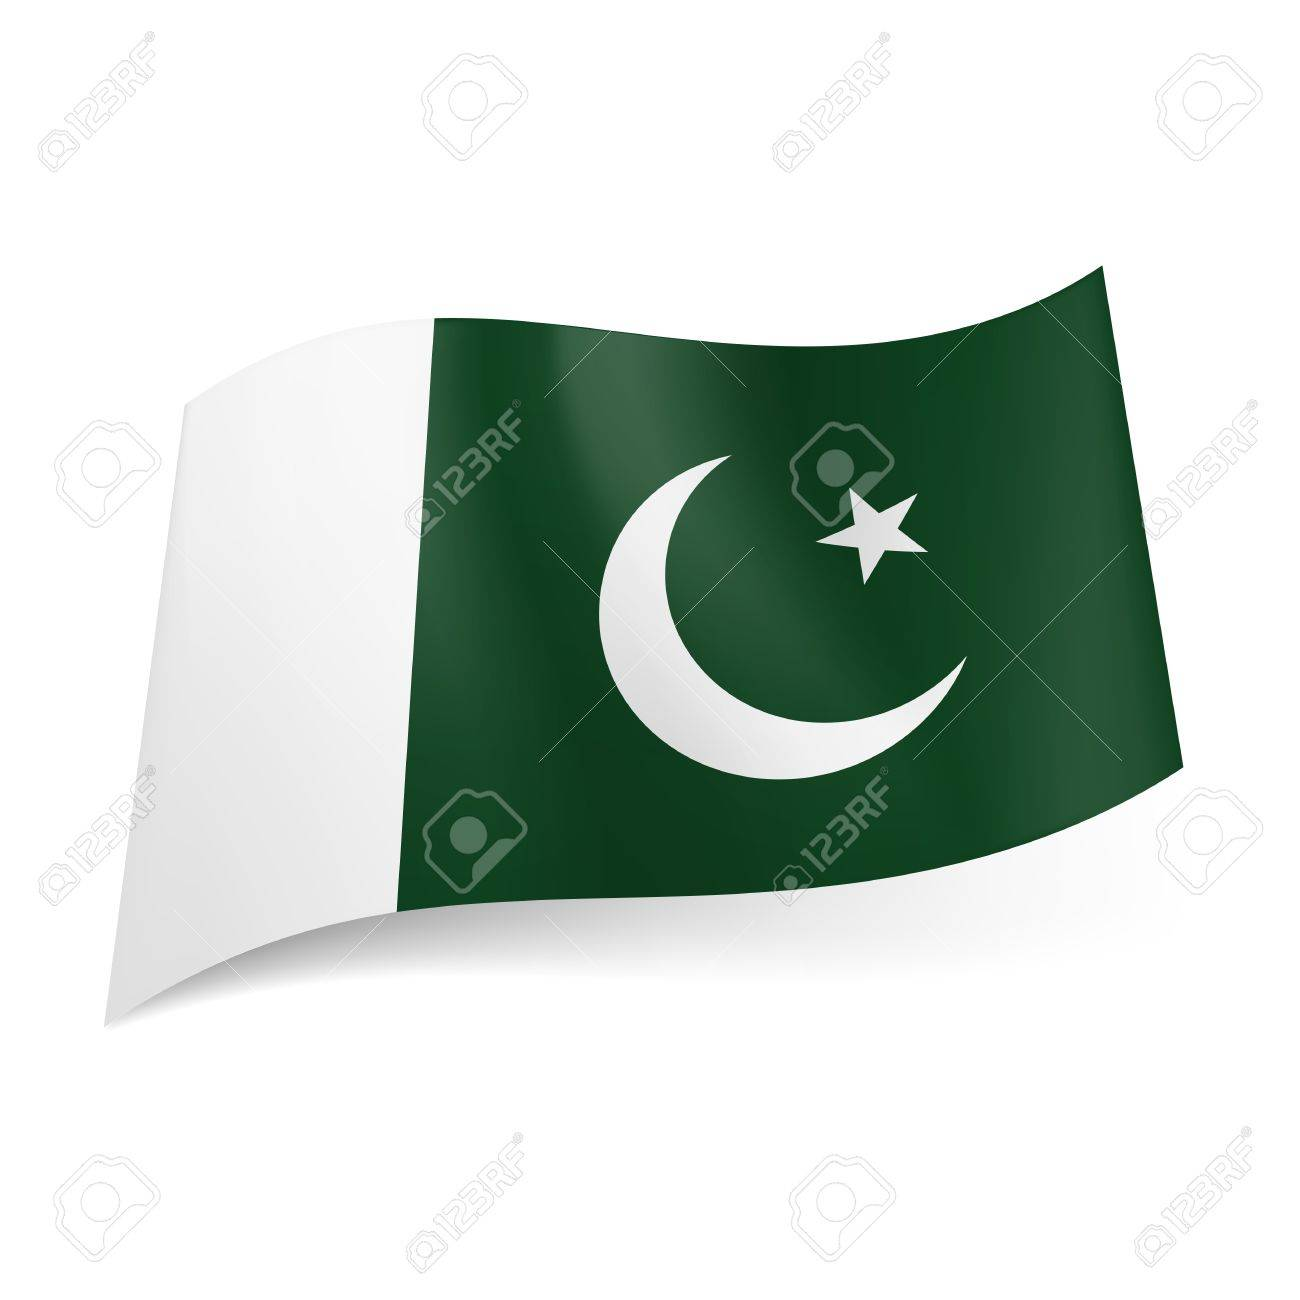 National flag of pakistan crescent moon and star on green national flag of pakistan crescent moon and star on green background with white vertical stripe biocorpaavc Gallery